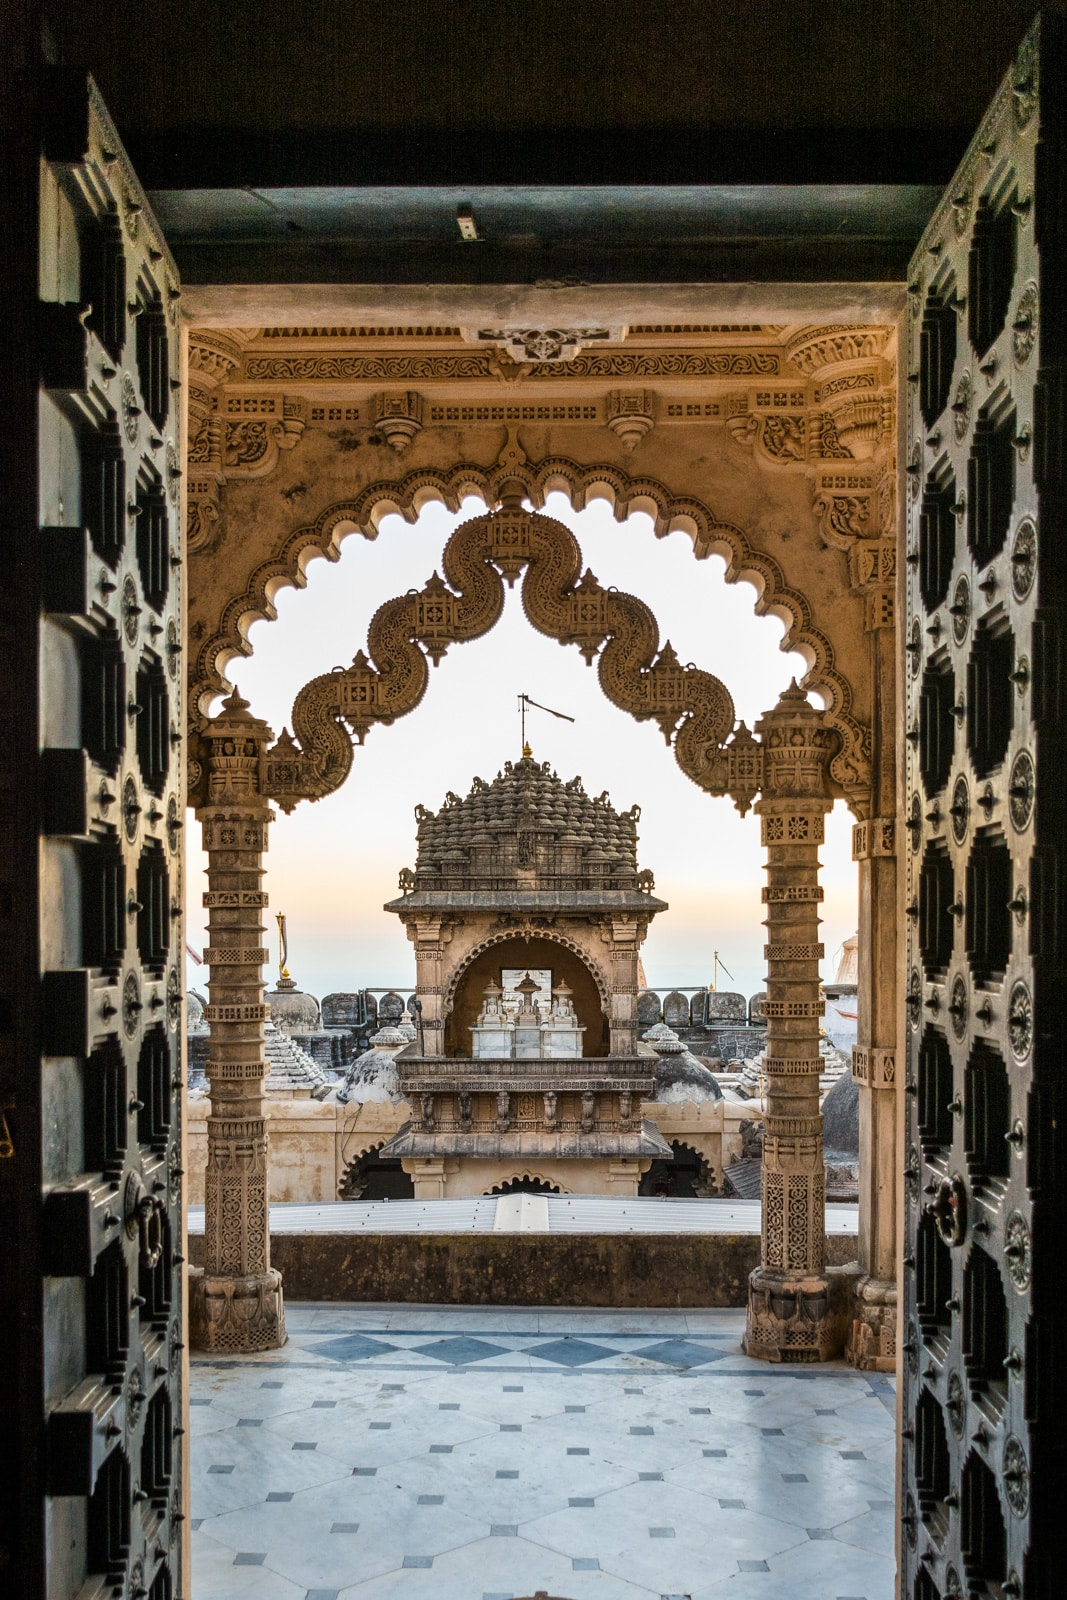 Temple doors opening to sunrise over the Jain temples of Palitana, Gujarat state, India. The perfect off the beaten track destination for your India trip!